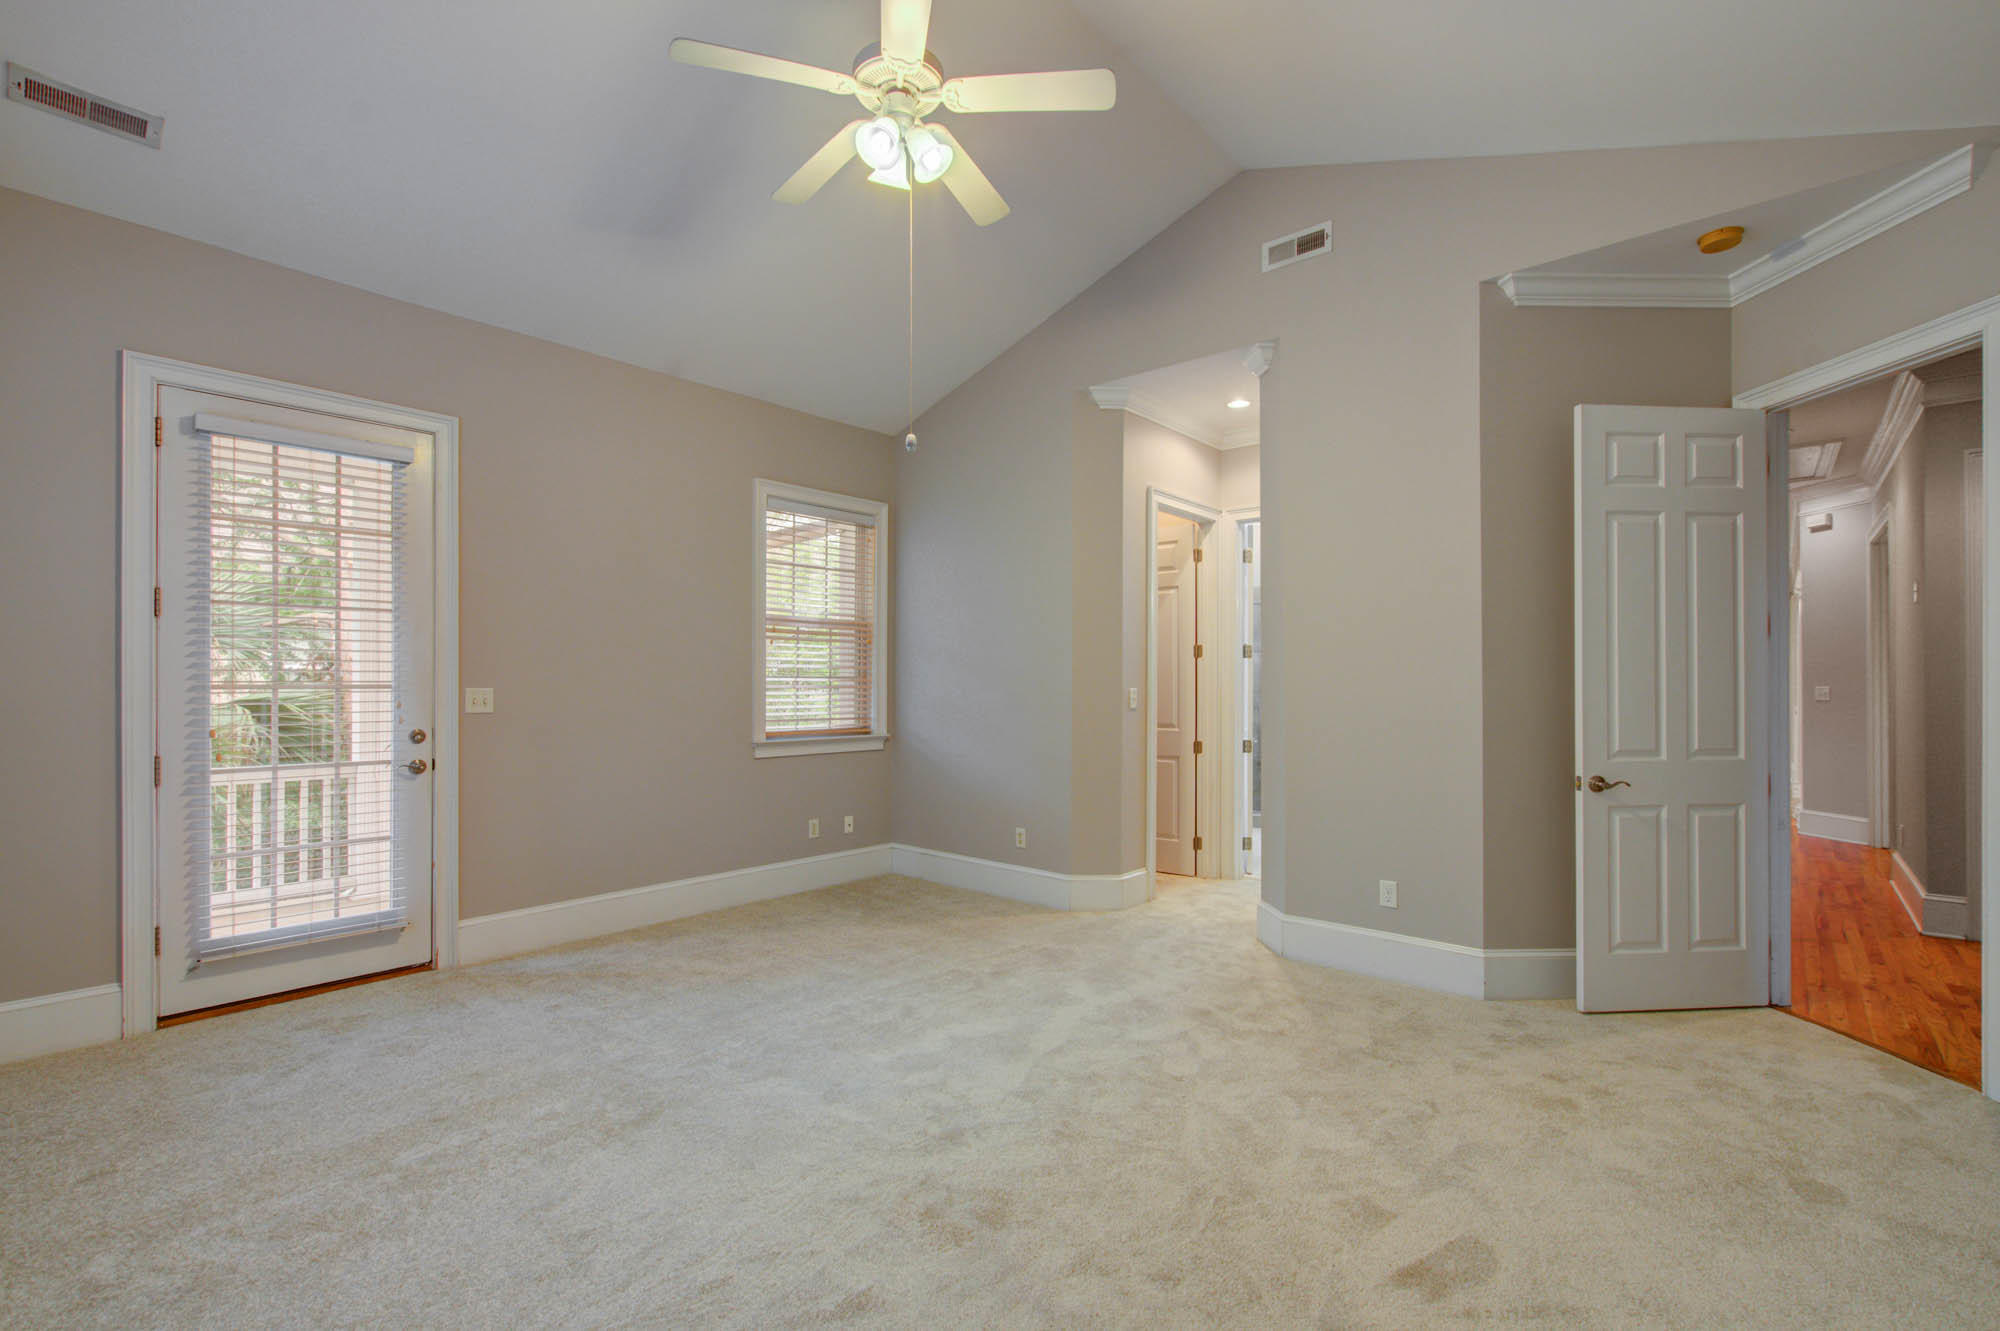 Rivertowne Country Club Homes For Sale - 1741 Rivertowne Country Club, Mount Pleasant, SC - 27